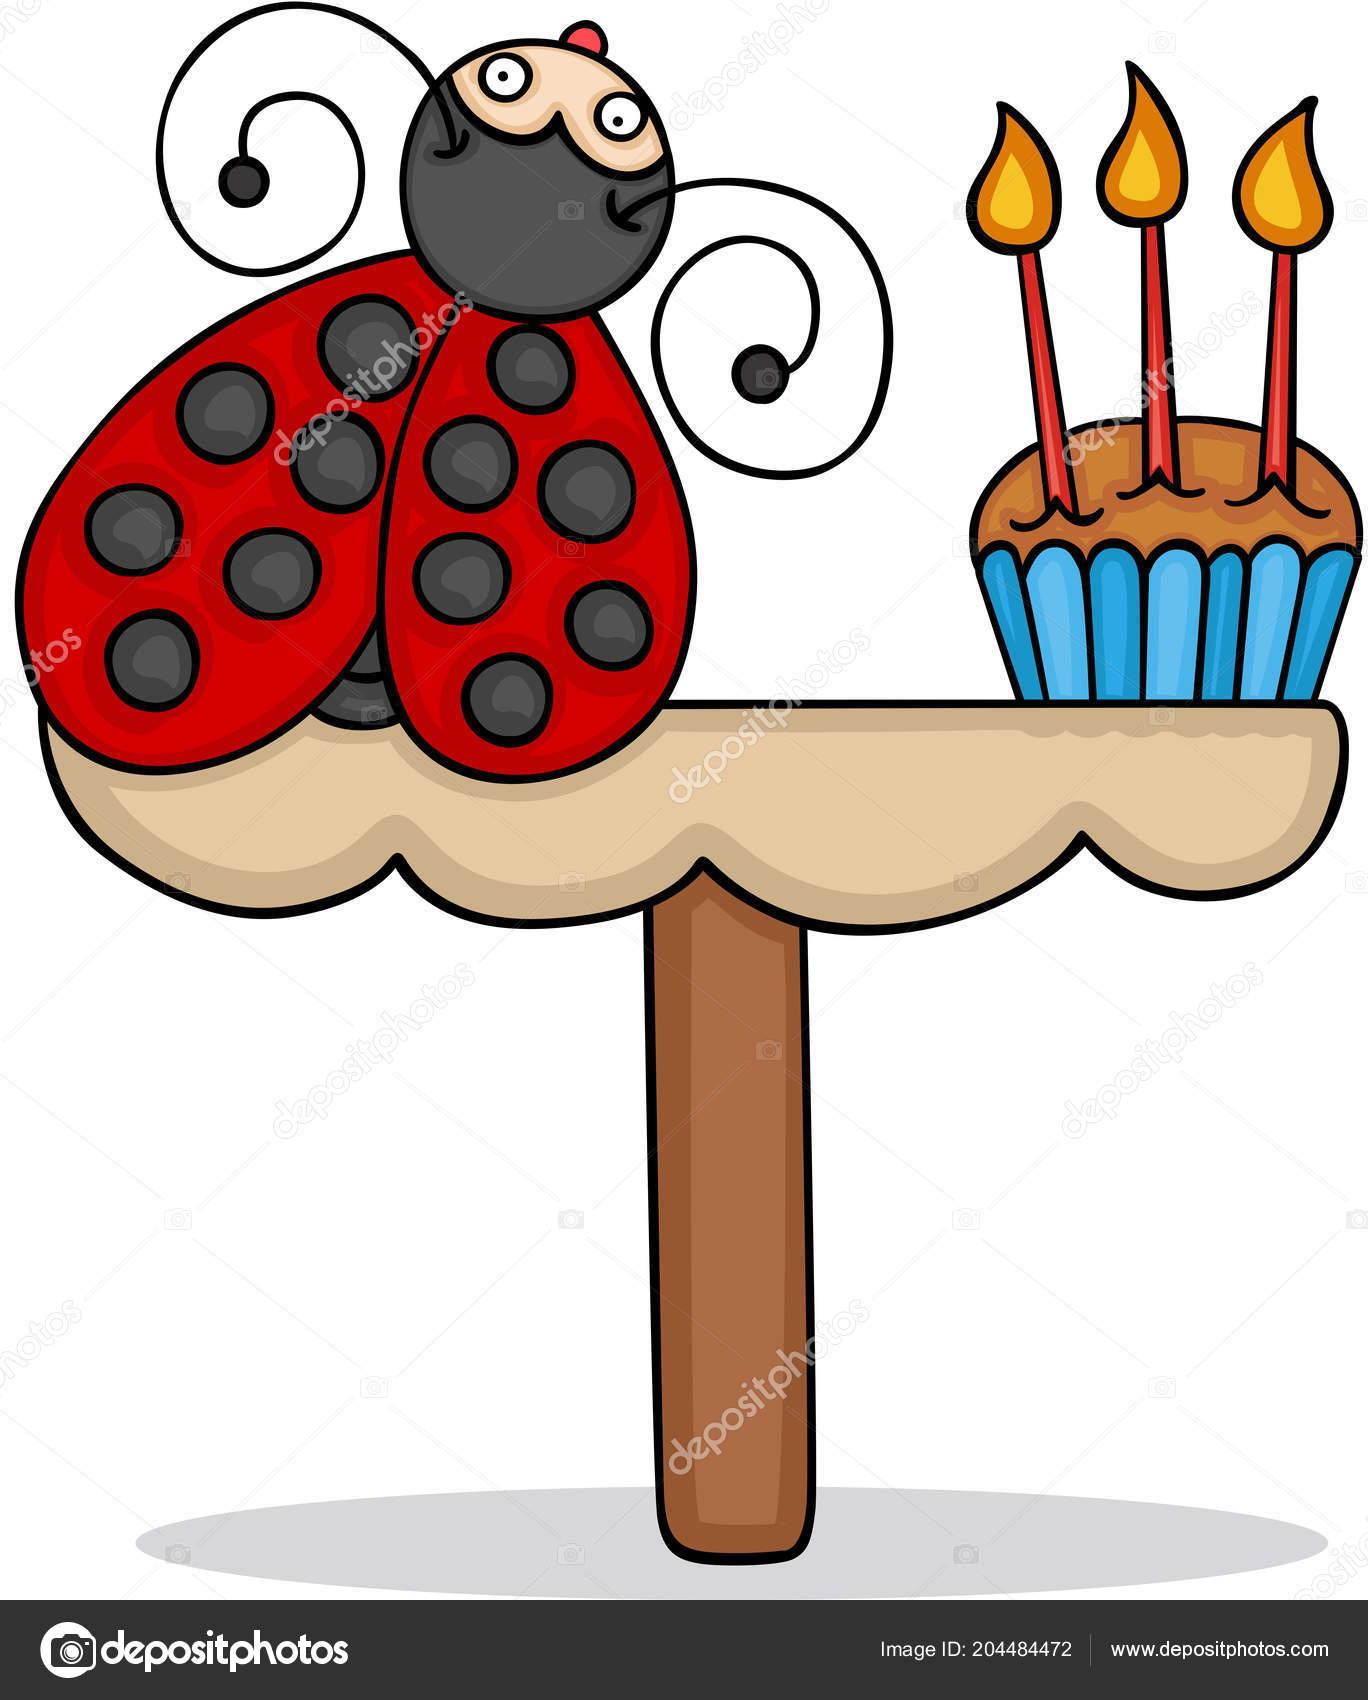 Stupendous Images Insect Birthday Cake Cute Ladybug Birthday Cake Stock Funny Birthday Cards Online Aeocydamsfinfo